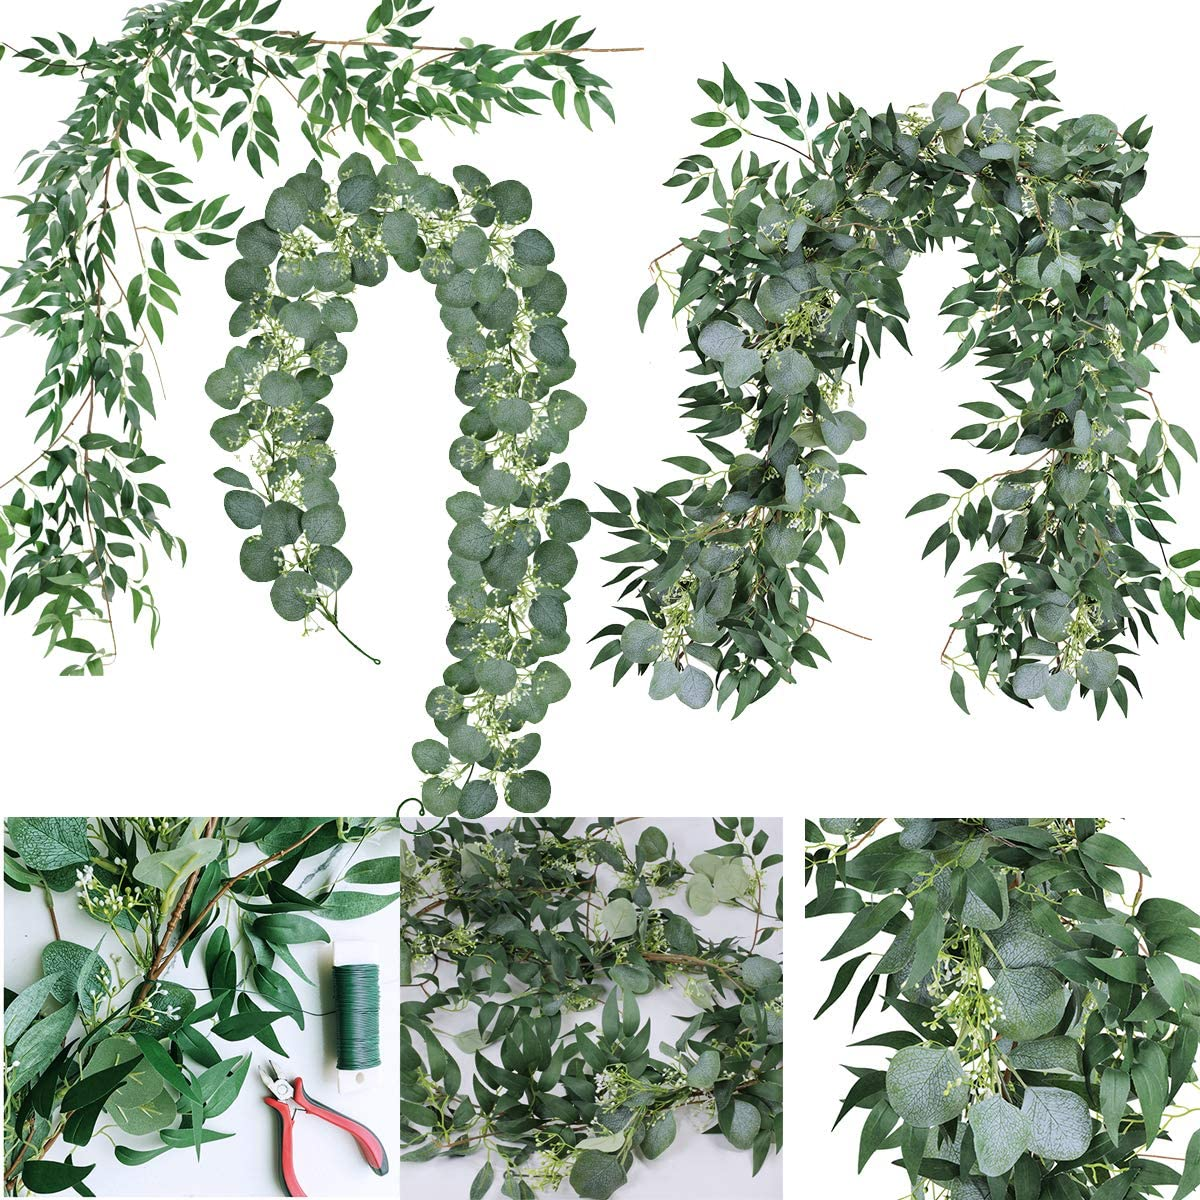 Supla 2 Pcs Artificial Greenery Garland Eucalyptus Garland Table Runner Faux Face Silver Dollar Eucalyptus Leaves Vine Willow Leaves Garland Holiday Greens for Wedding Jungle Party Wall Backdrop Decor